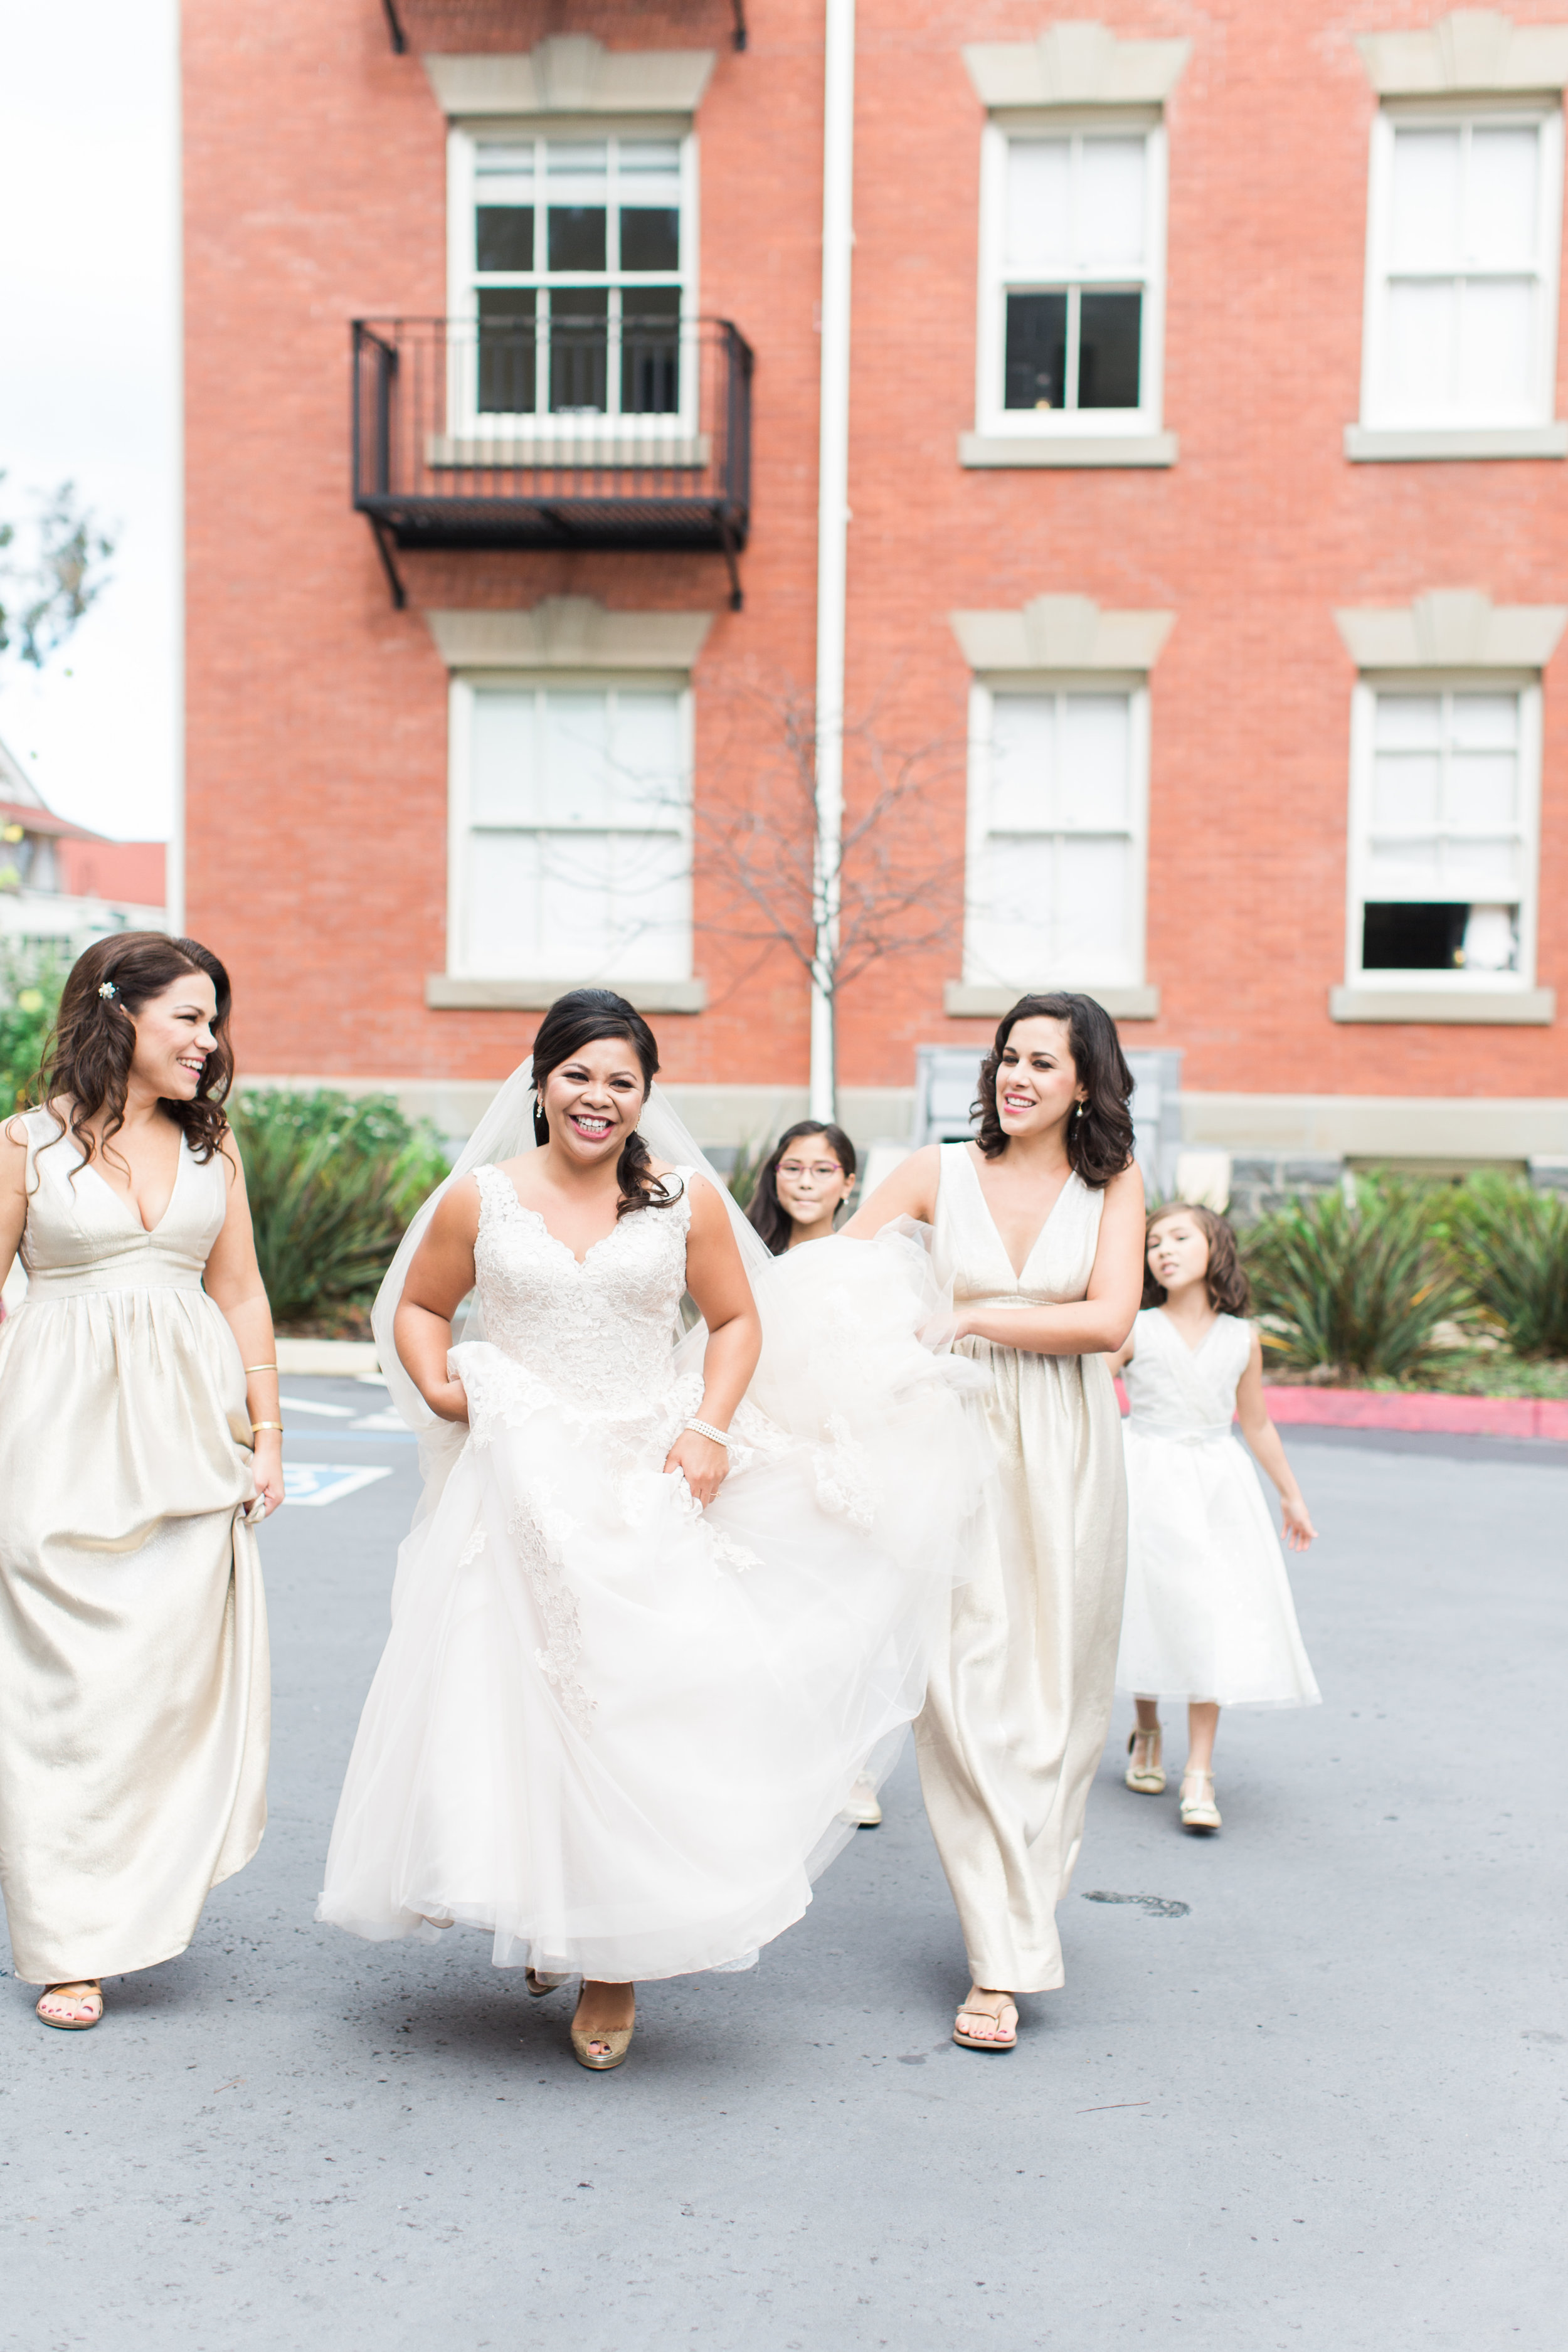 style-inspired-wedding-at-firehouse-8-in-san-francisco-21.jpg